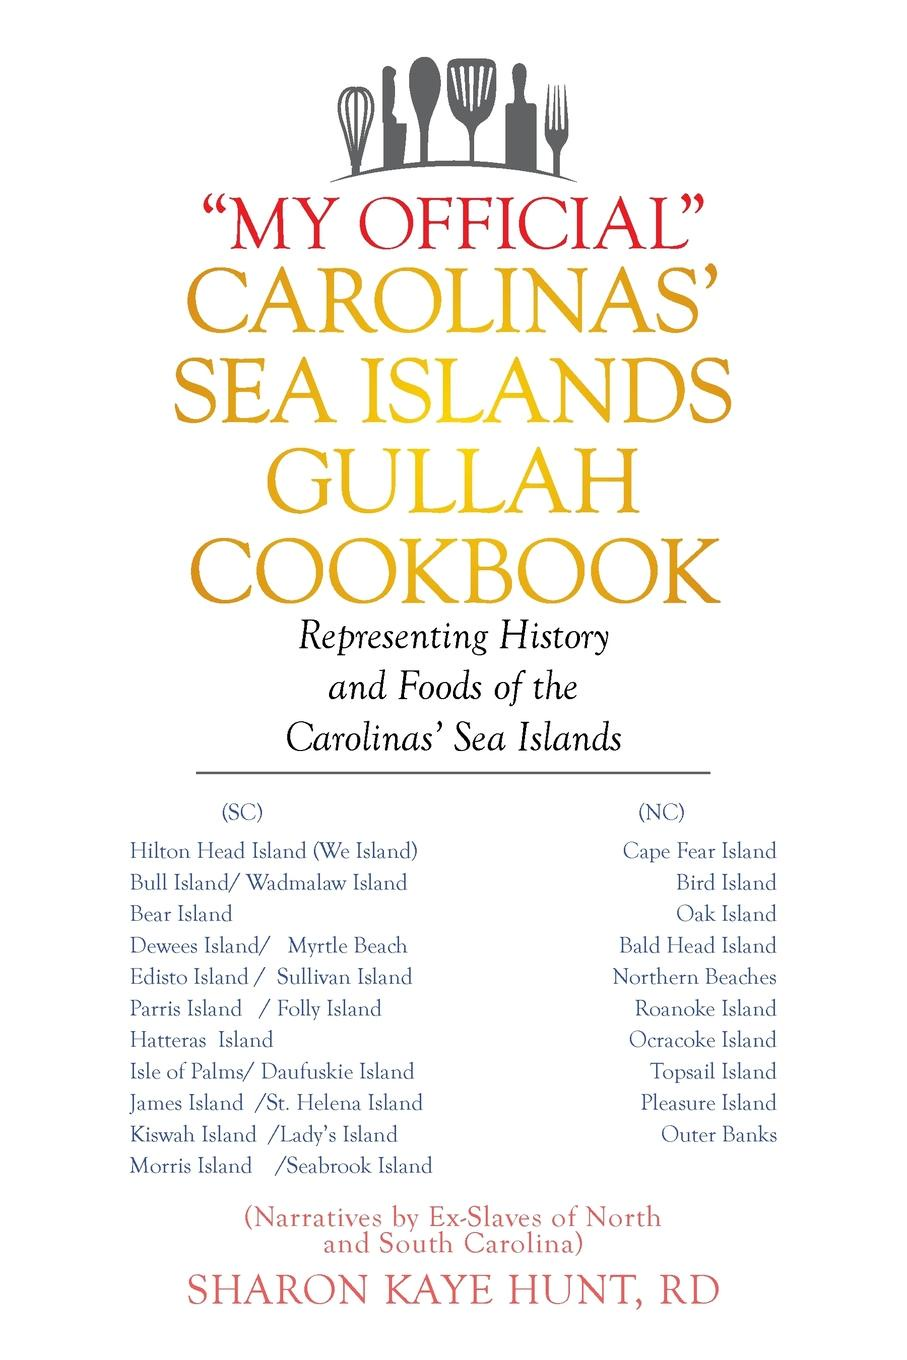 Sharon Kaye Hunt RD My Official Carolinas' Sea Islands Gullah Cookbook. Representing History and Foods of the Carolinas' Sea Islands black allison my first touch and find sea